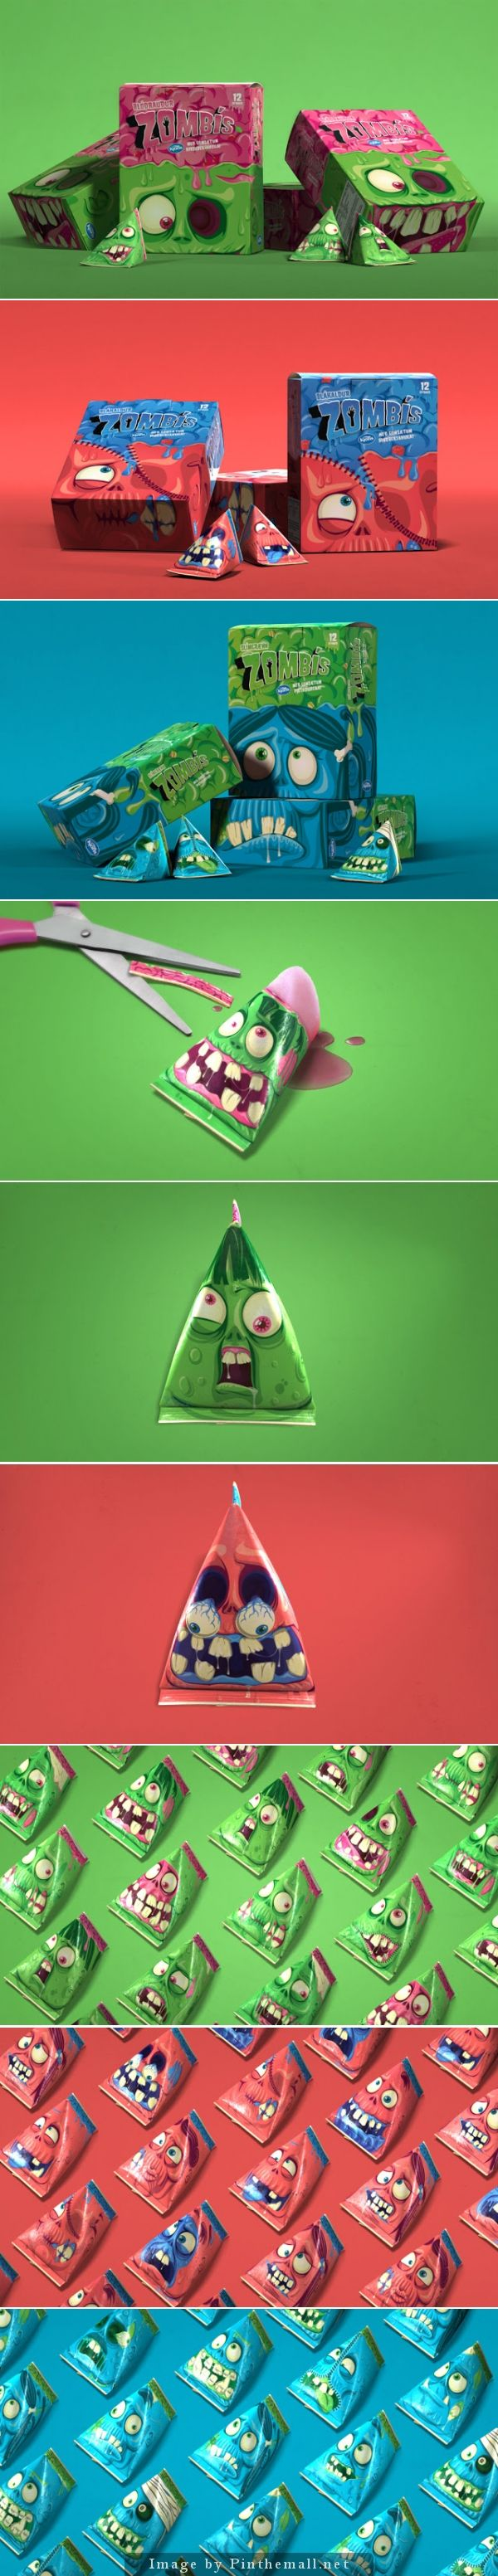 Zombis Freezer Pops Creative Agency: Brandenburg Project type: Produced, Commercial Work Location: Iceland